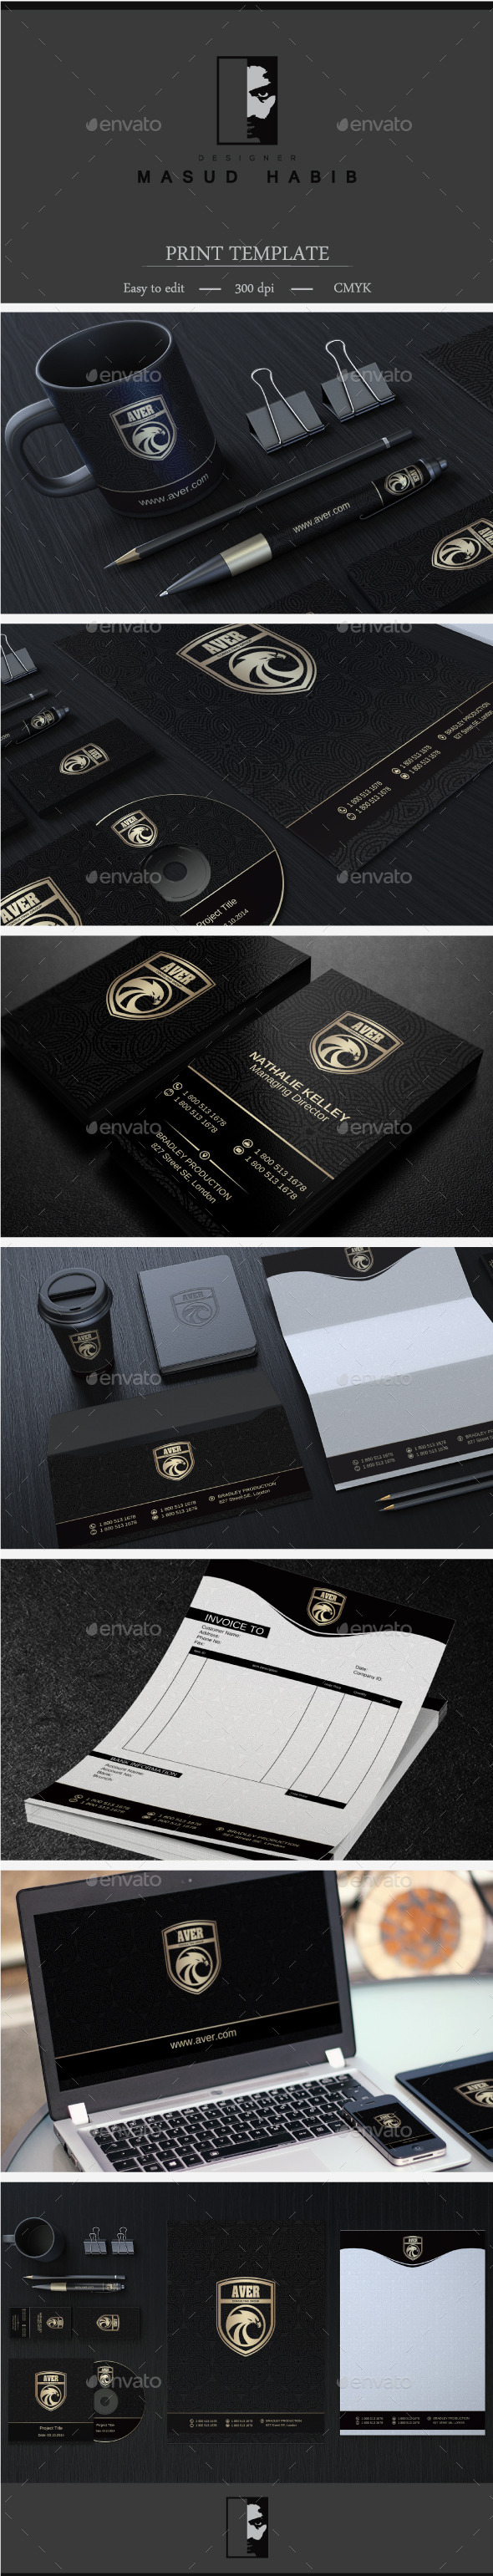 Creative Corporate Identity 26 - Stationery Print Templates